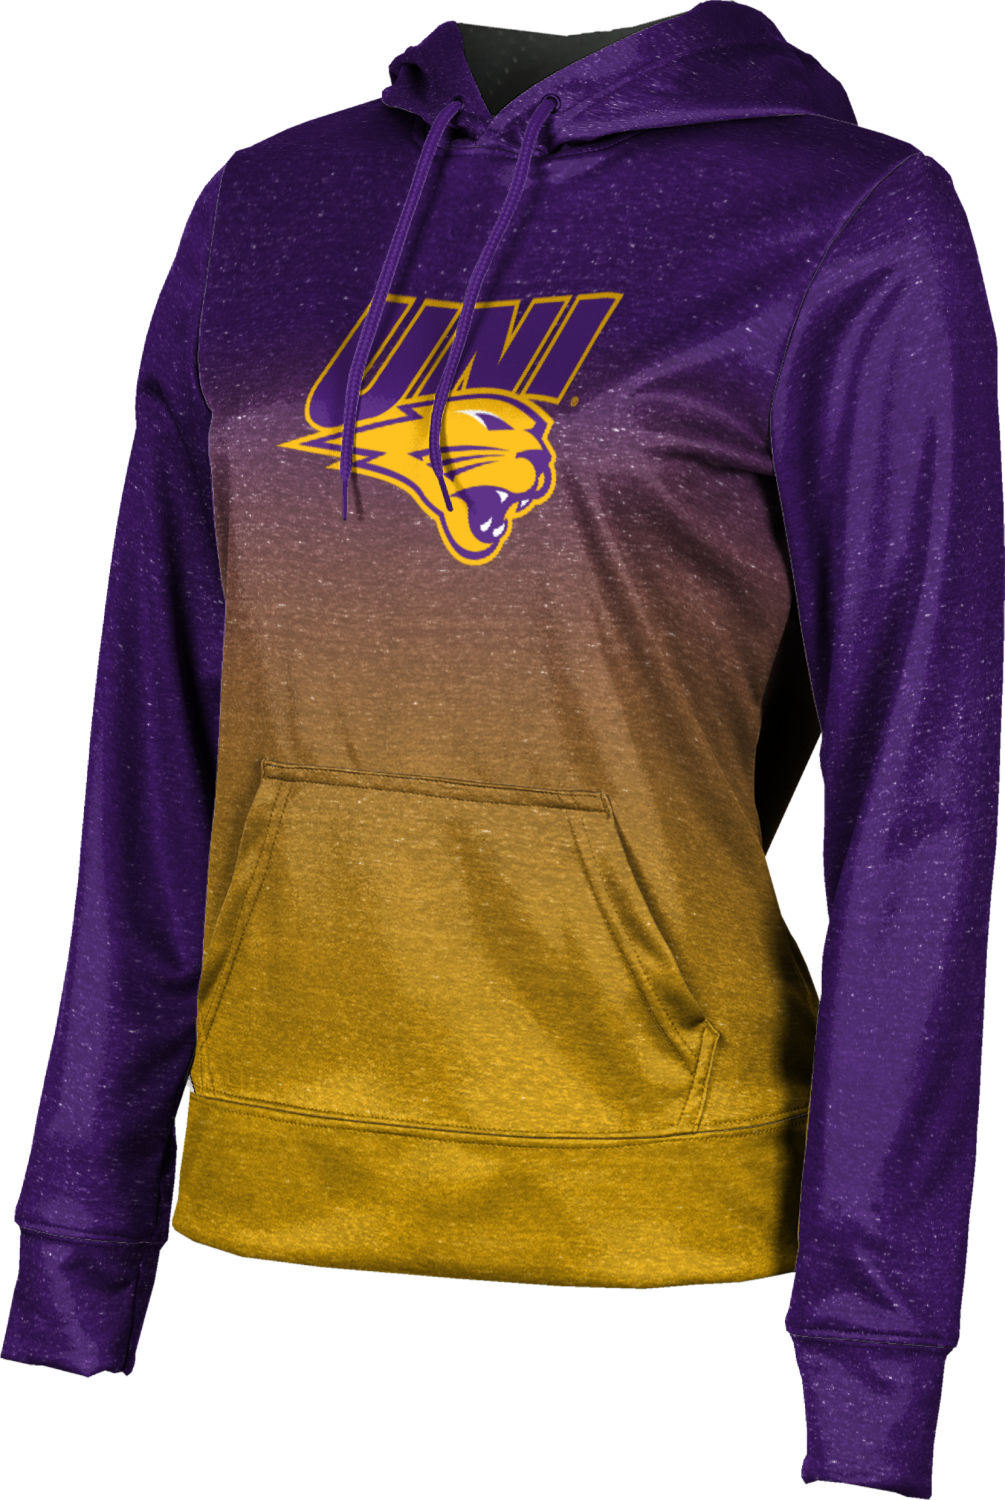 ProSphere Girls' University of Northern Iowa Ombre Pullover Hoodie